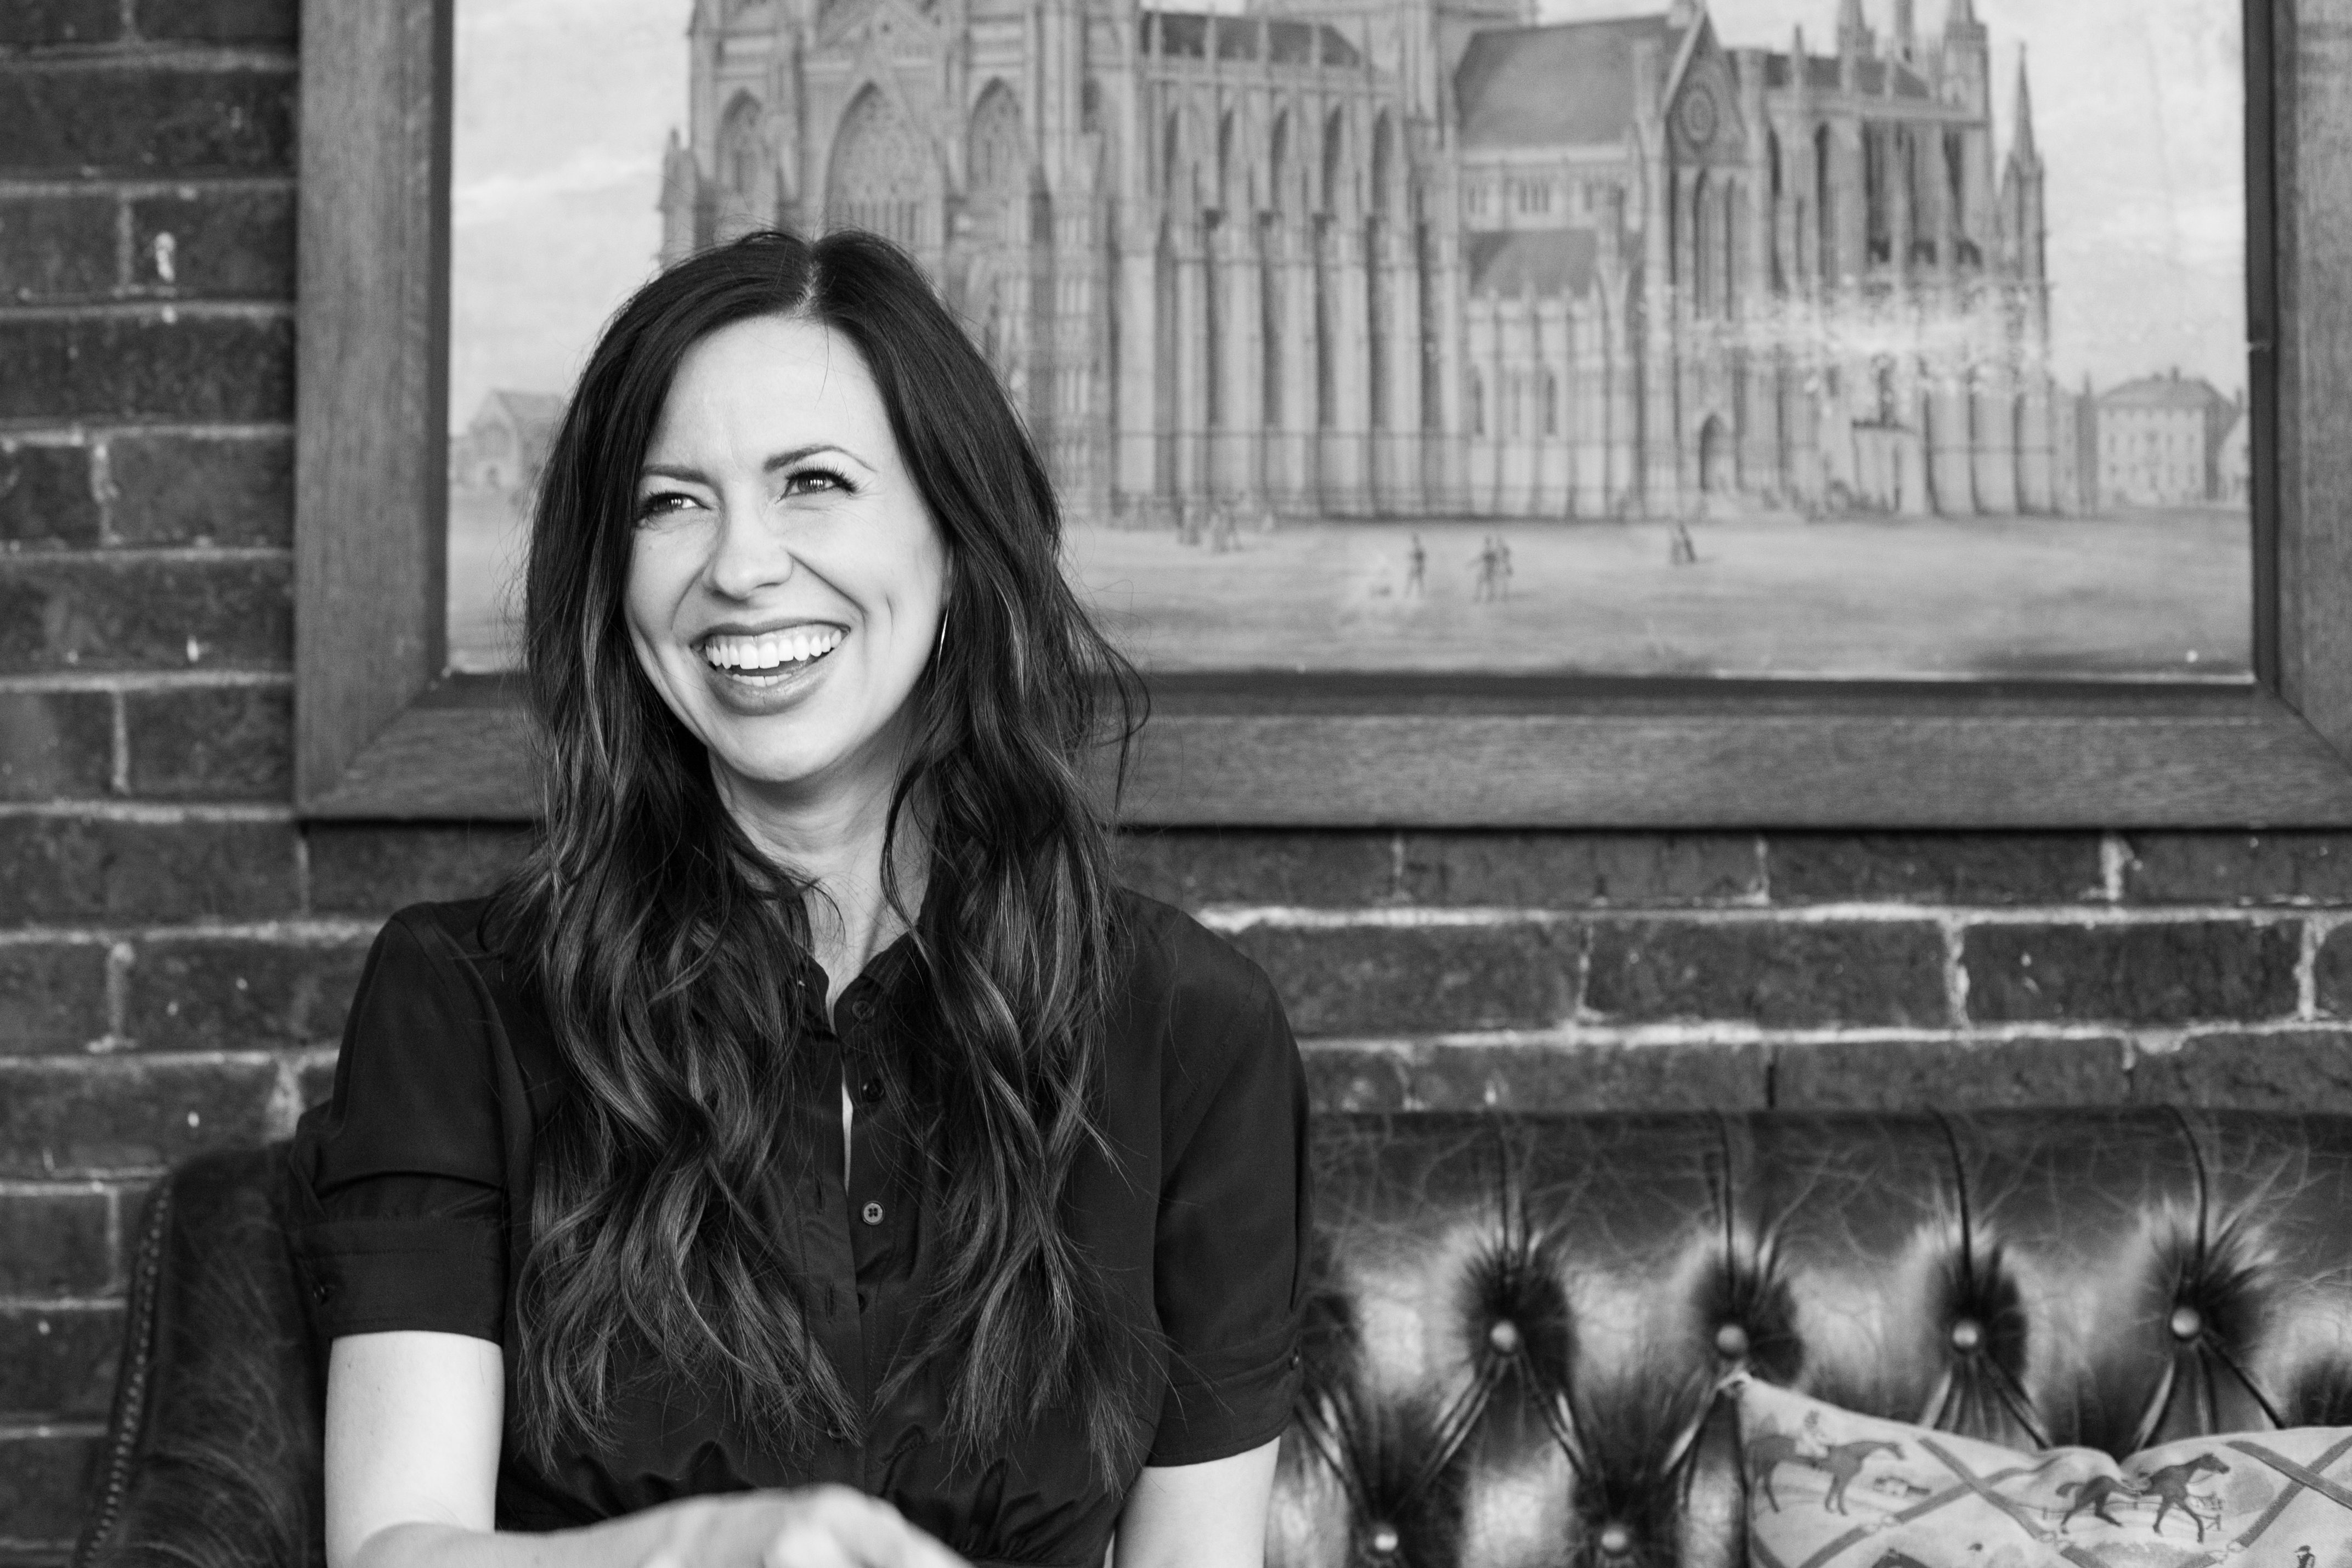 Joy Williams Sings 'The Trouble With Wanting' Off New Album - Rolling Stone